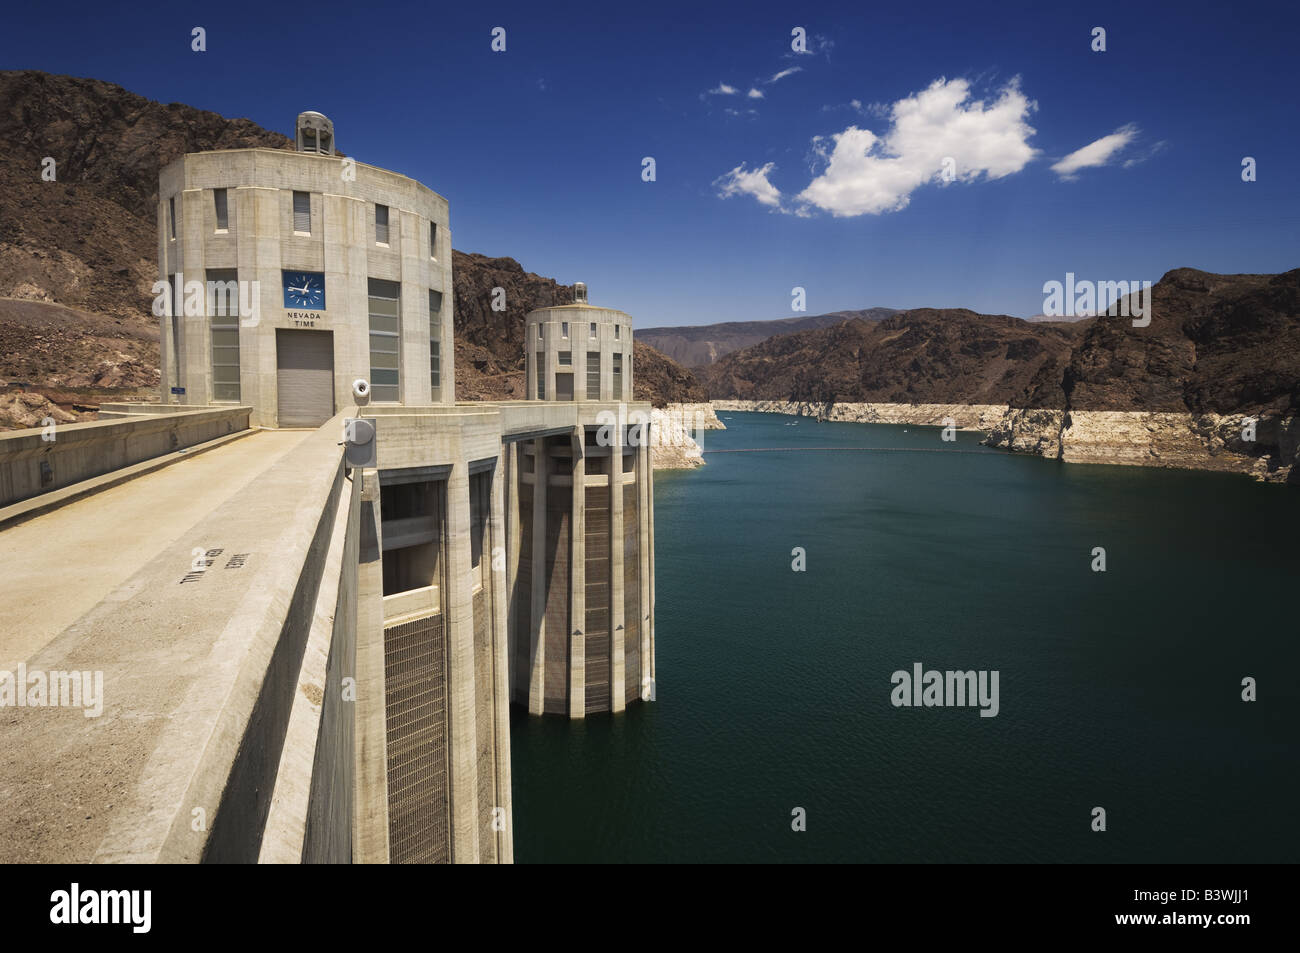 Intake towers at The Hoover Dam. Stock Photo